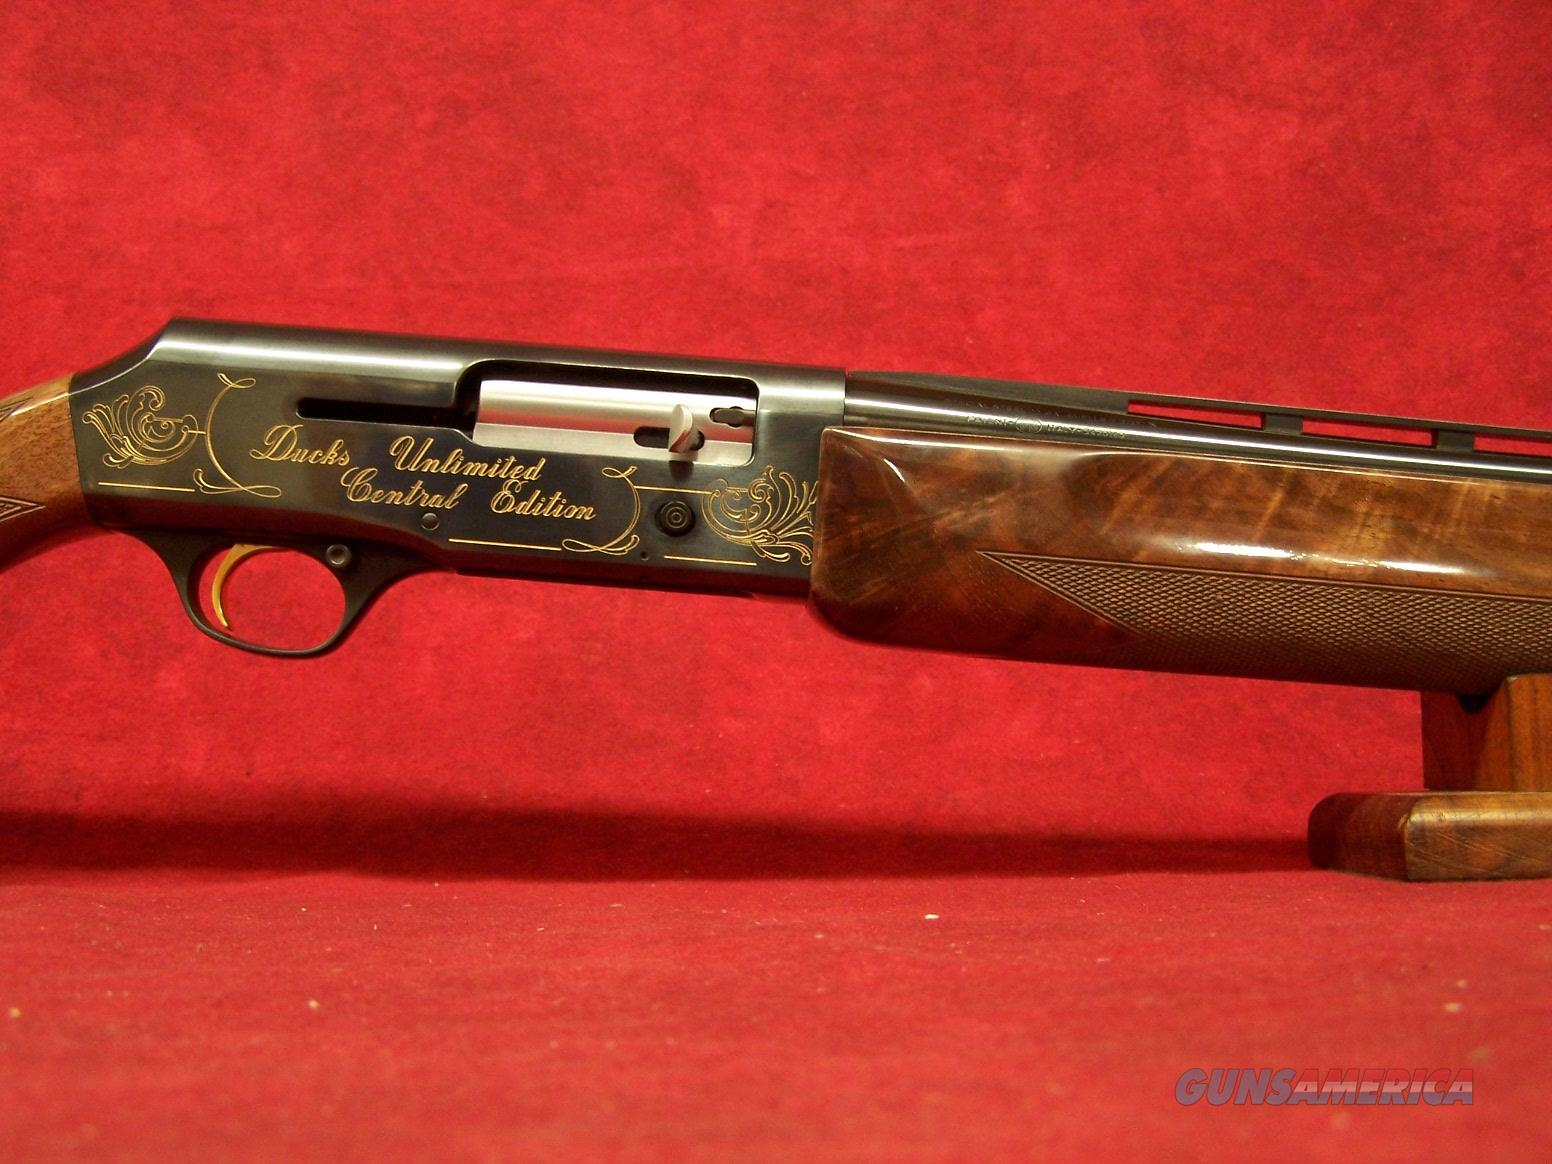 "Browning B-80 Ducks Unlimited 12ga 1983 Central Edition ""The Plains"" 30"" Full  Guns > Shotguns > Browning Shotguns > Autoloaders > Hunting"